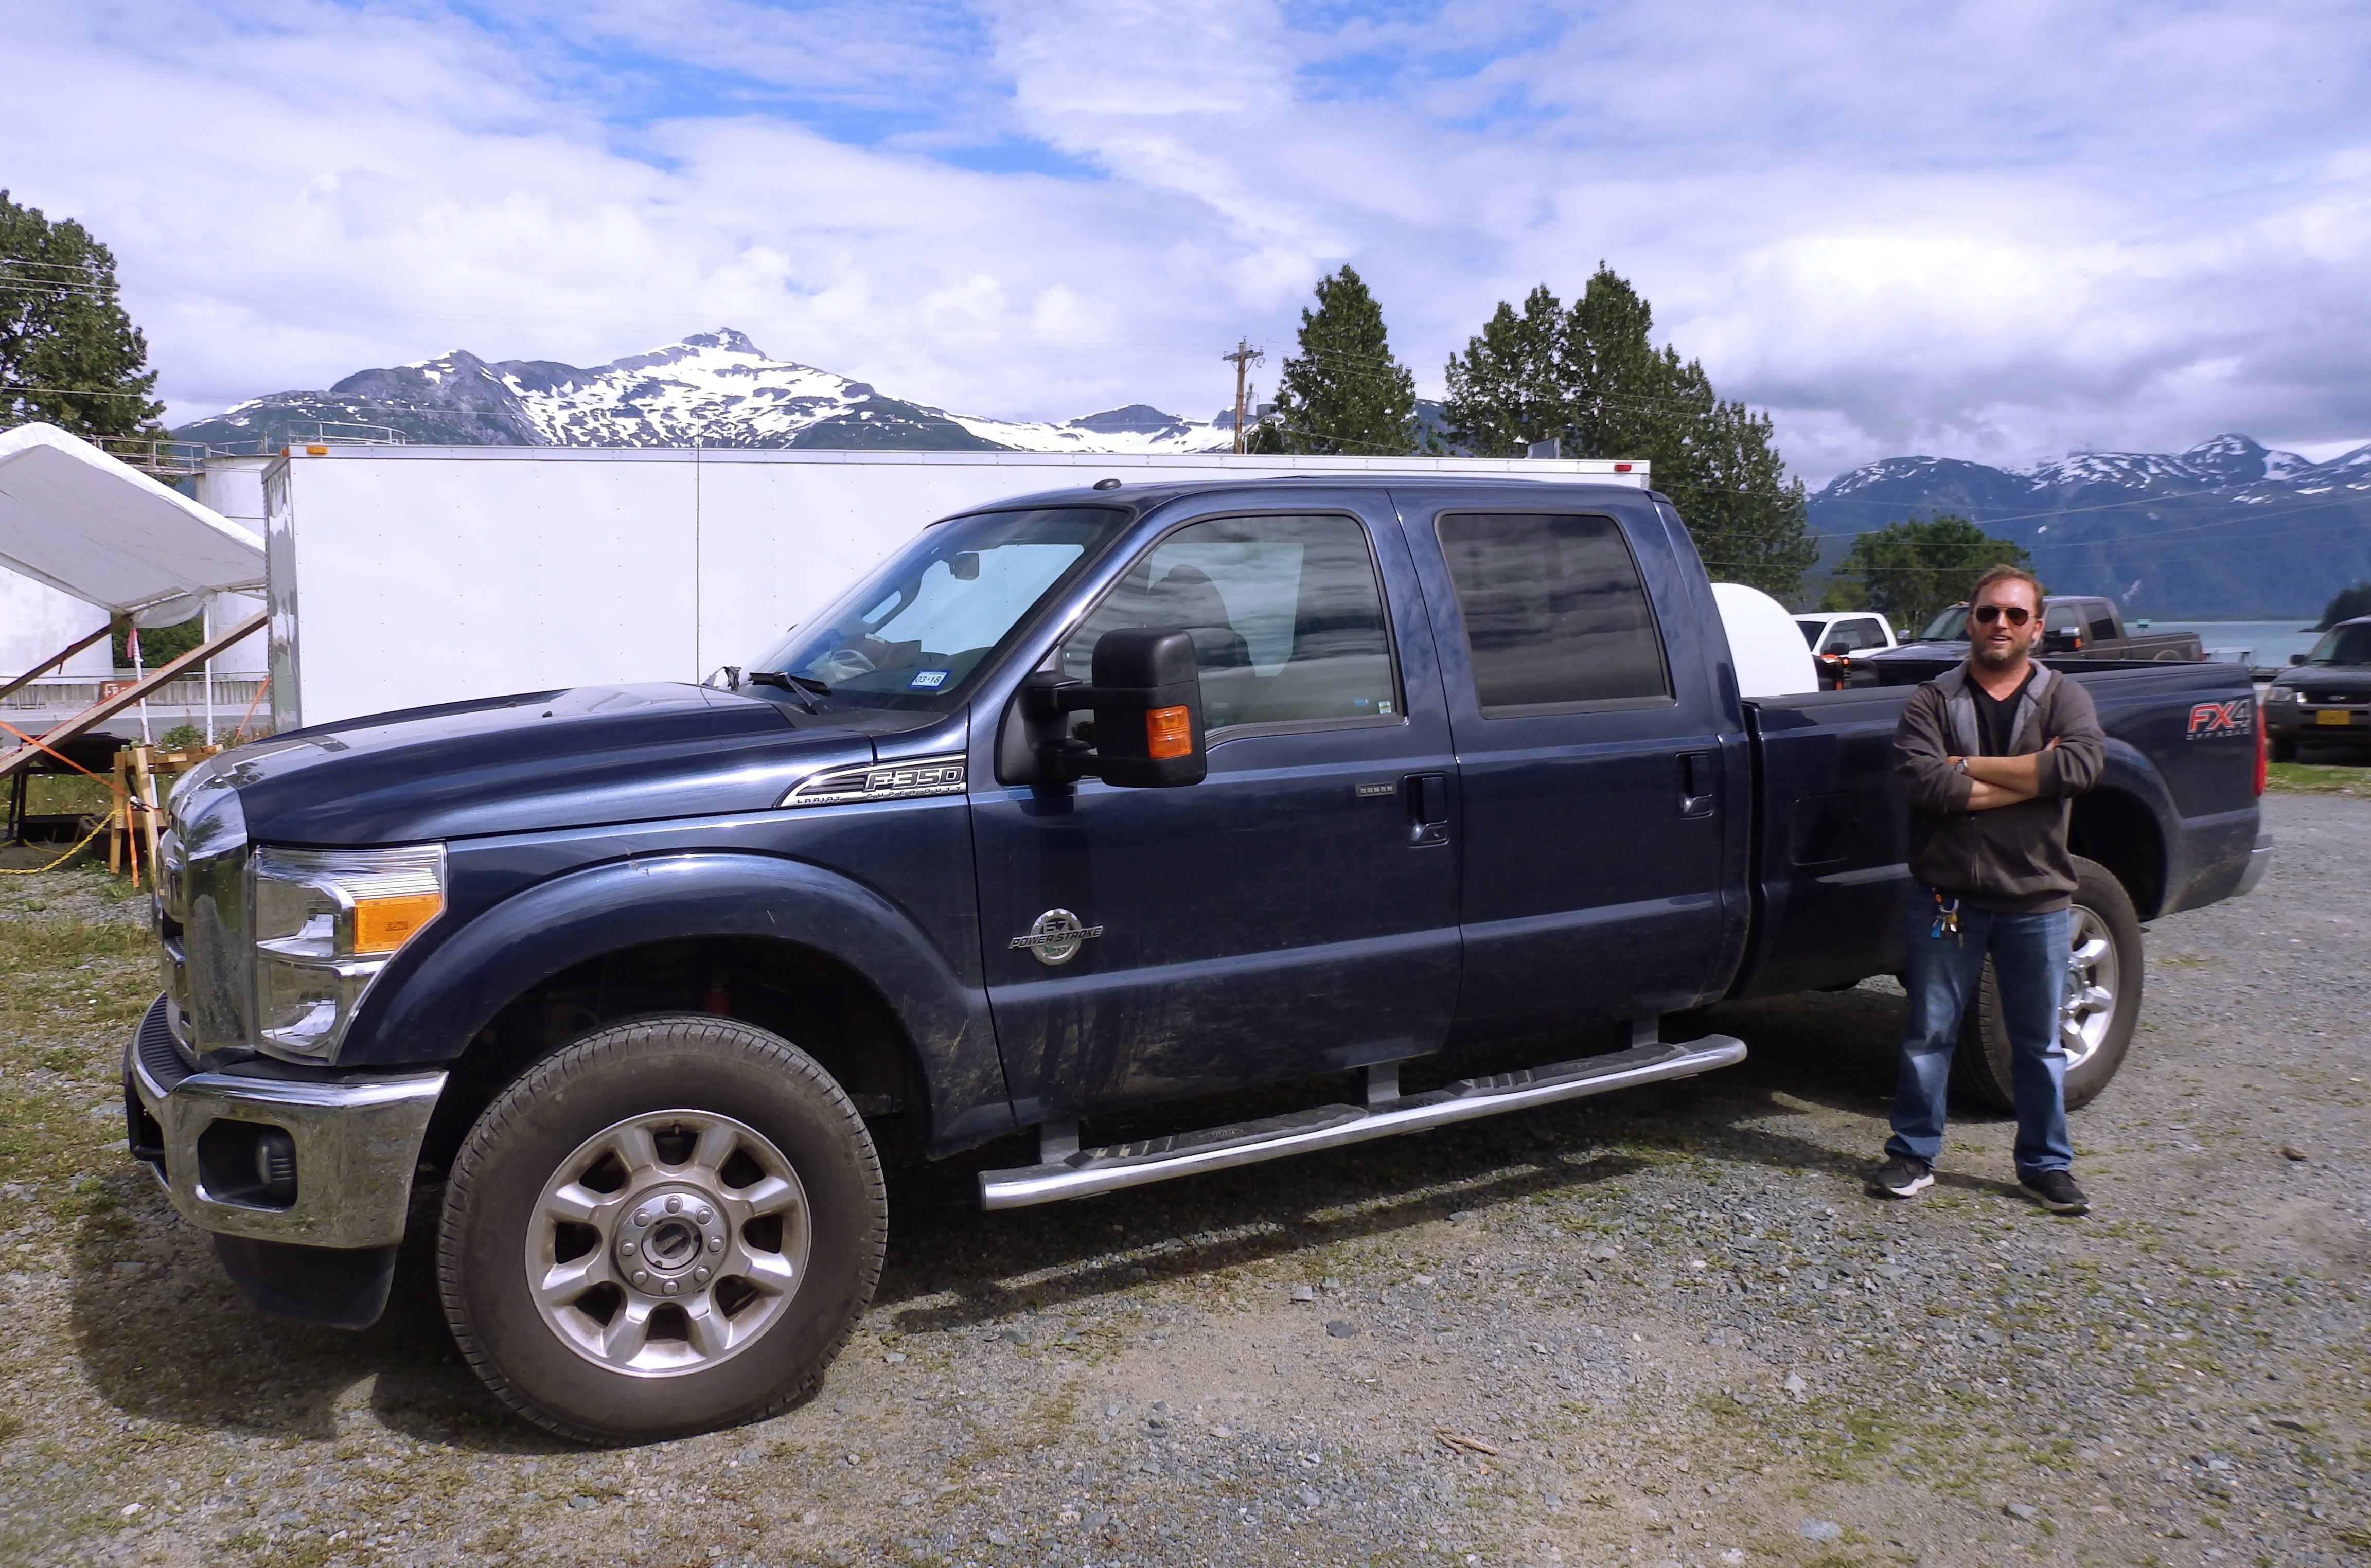 Haines resident Alex Stock has signed up to drive for Uber. He's waiting on a background check and vehicle inspection. (Photo by Emily Files/KHNS)